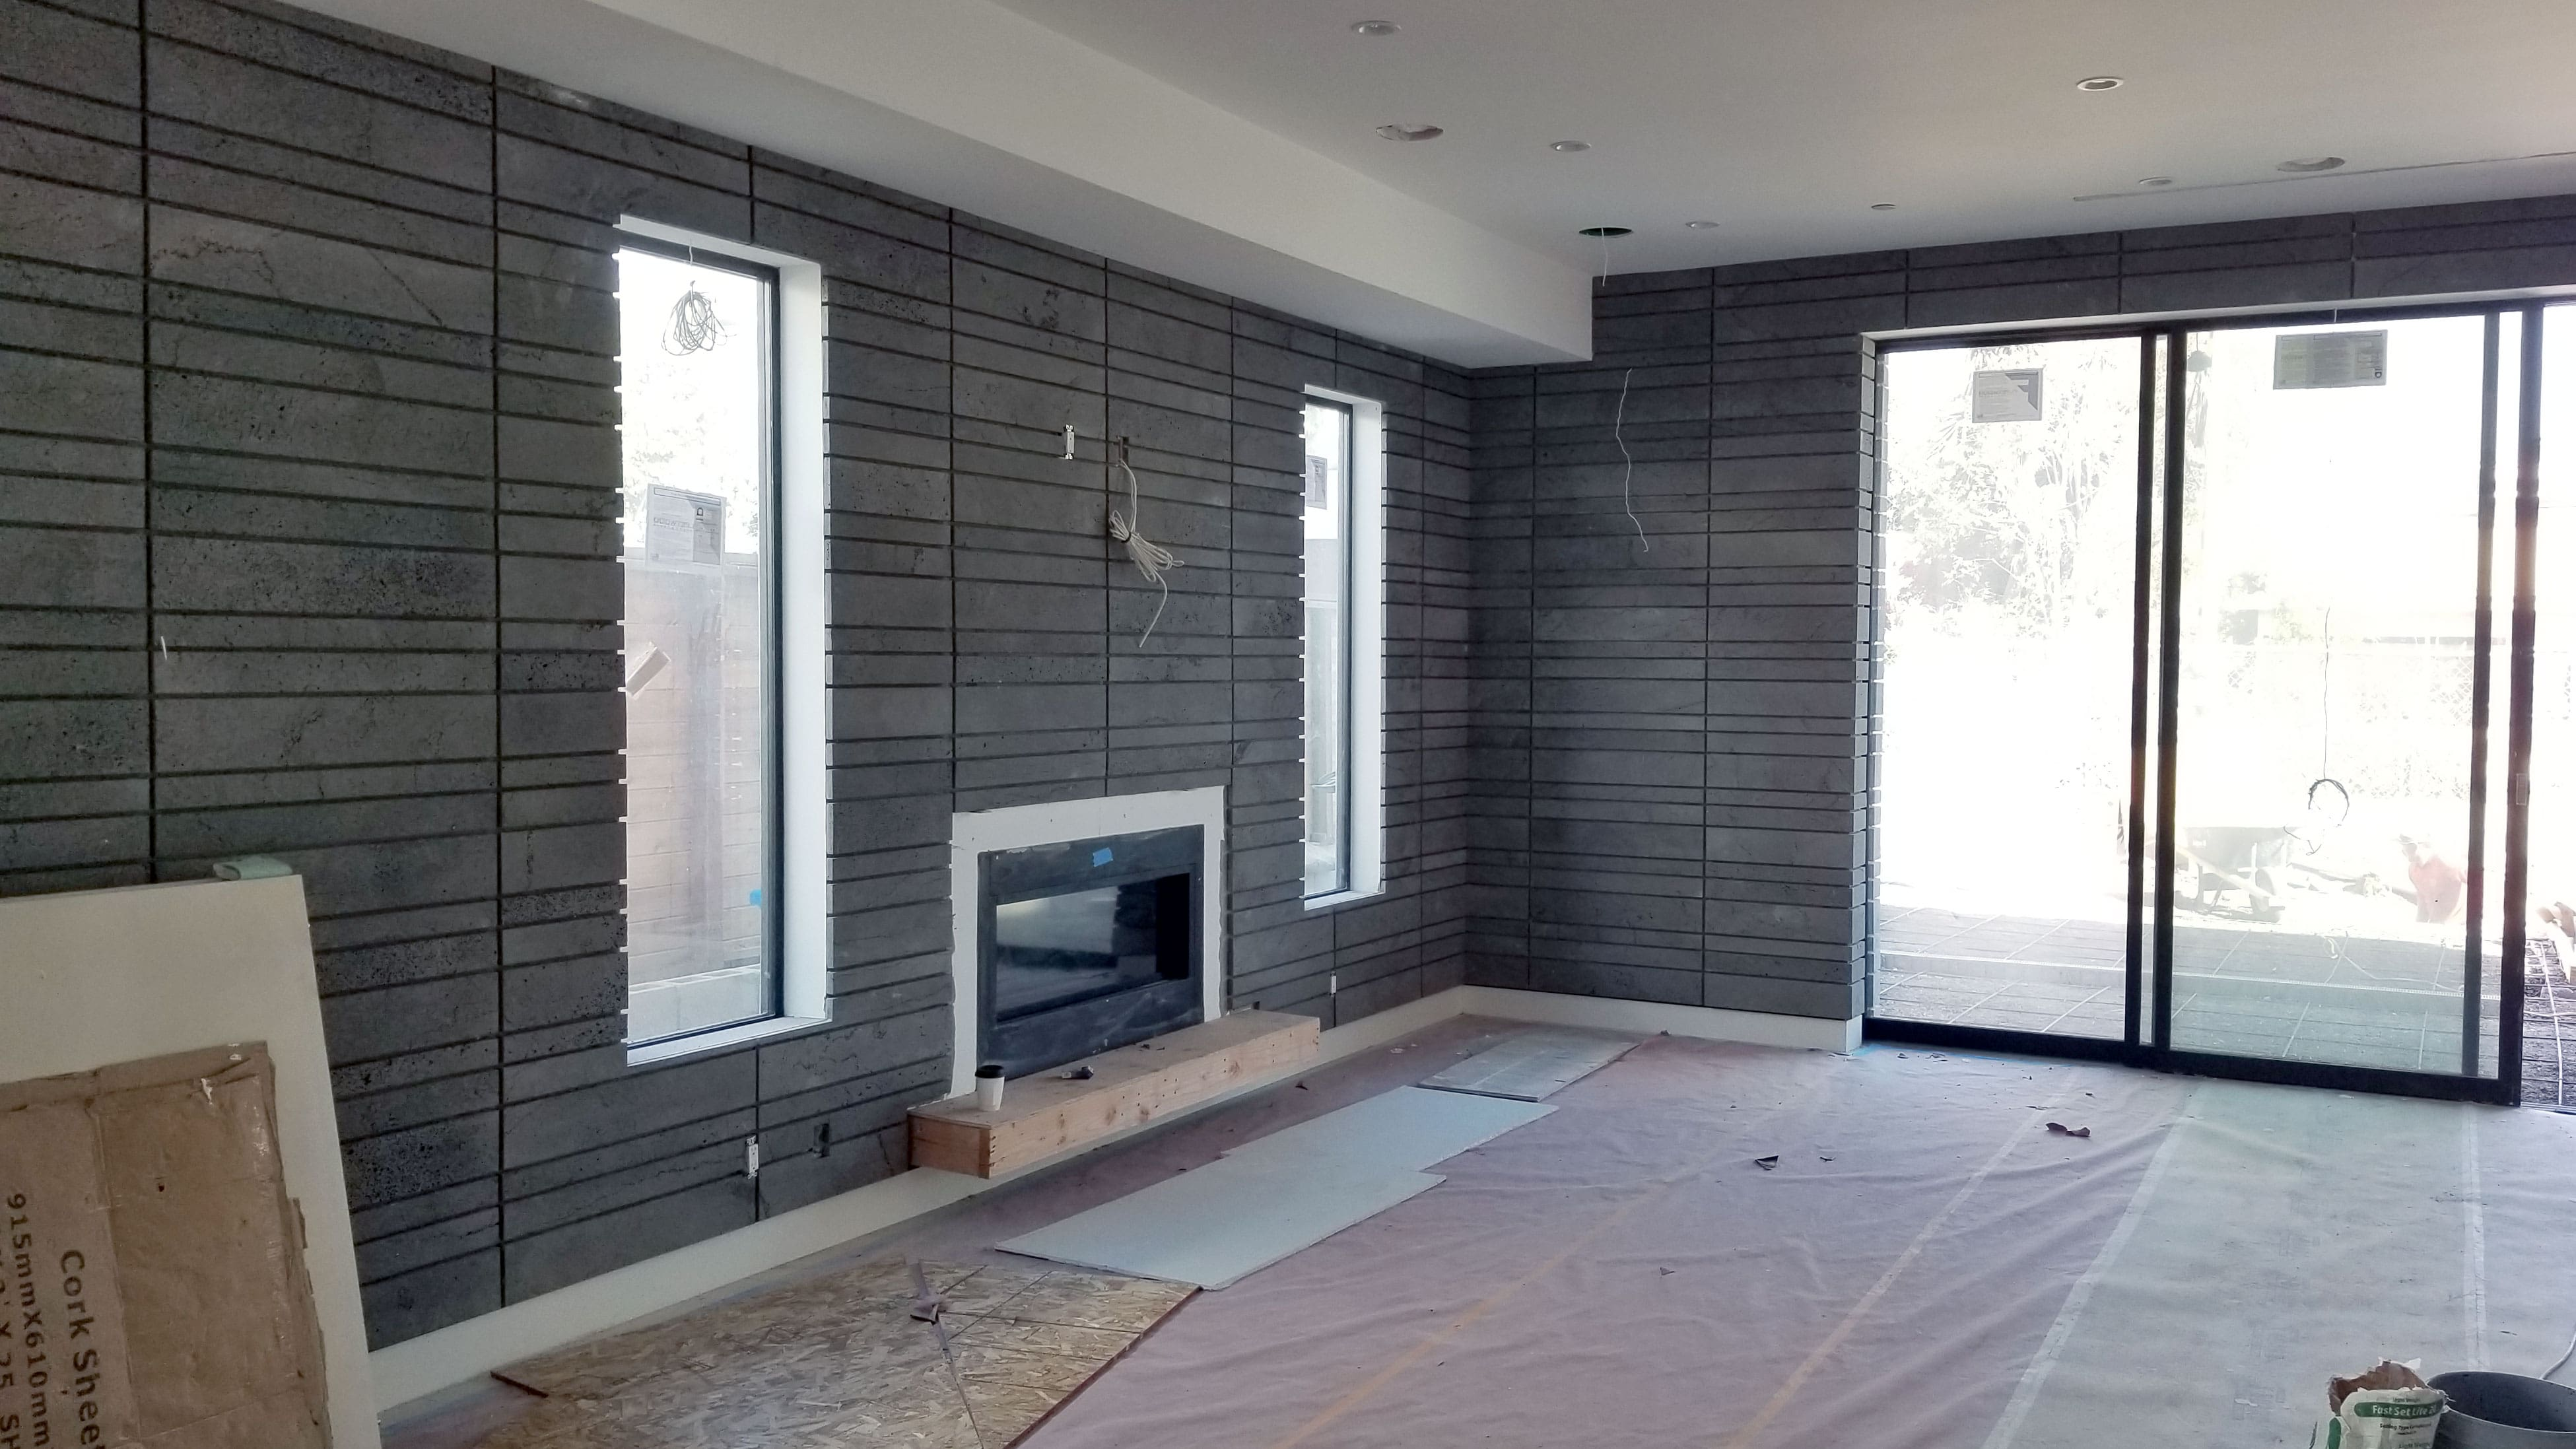 Norstone Planc Large Format Tile on interior feature wall with fireplace in Hollywood, CA